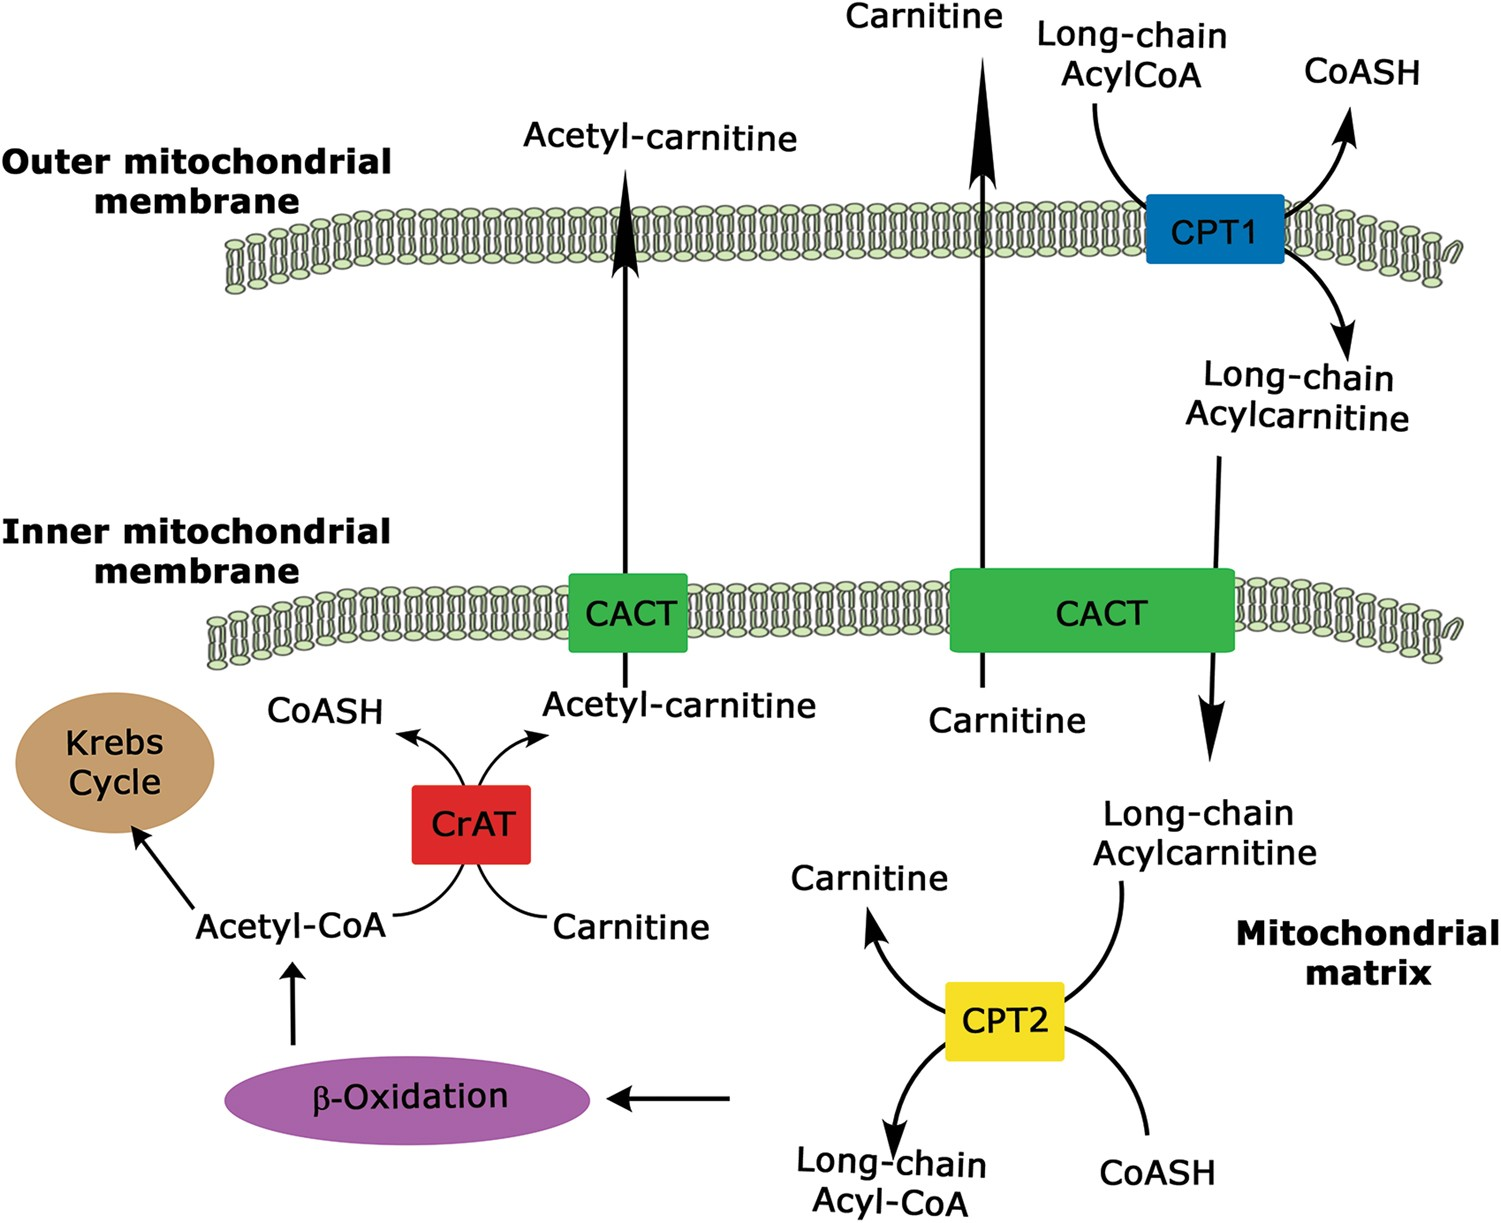 the carnitine system and cancer metabolic plasticity cell deaththe carnitine system and cancer metabolic plasticity cell death \u0026 disease